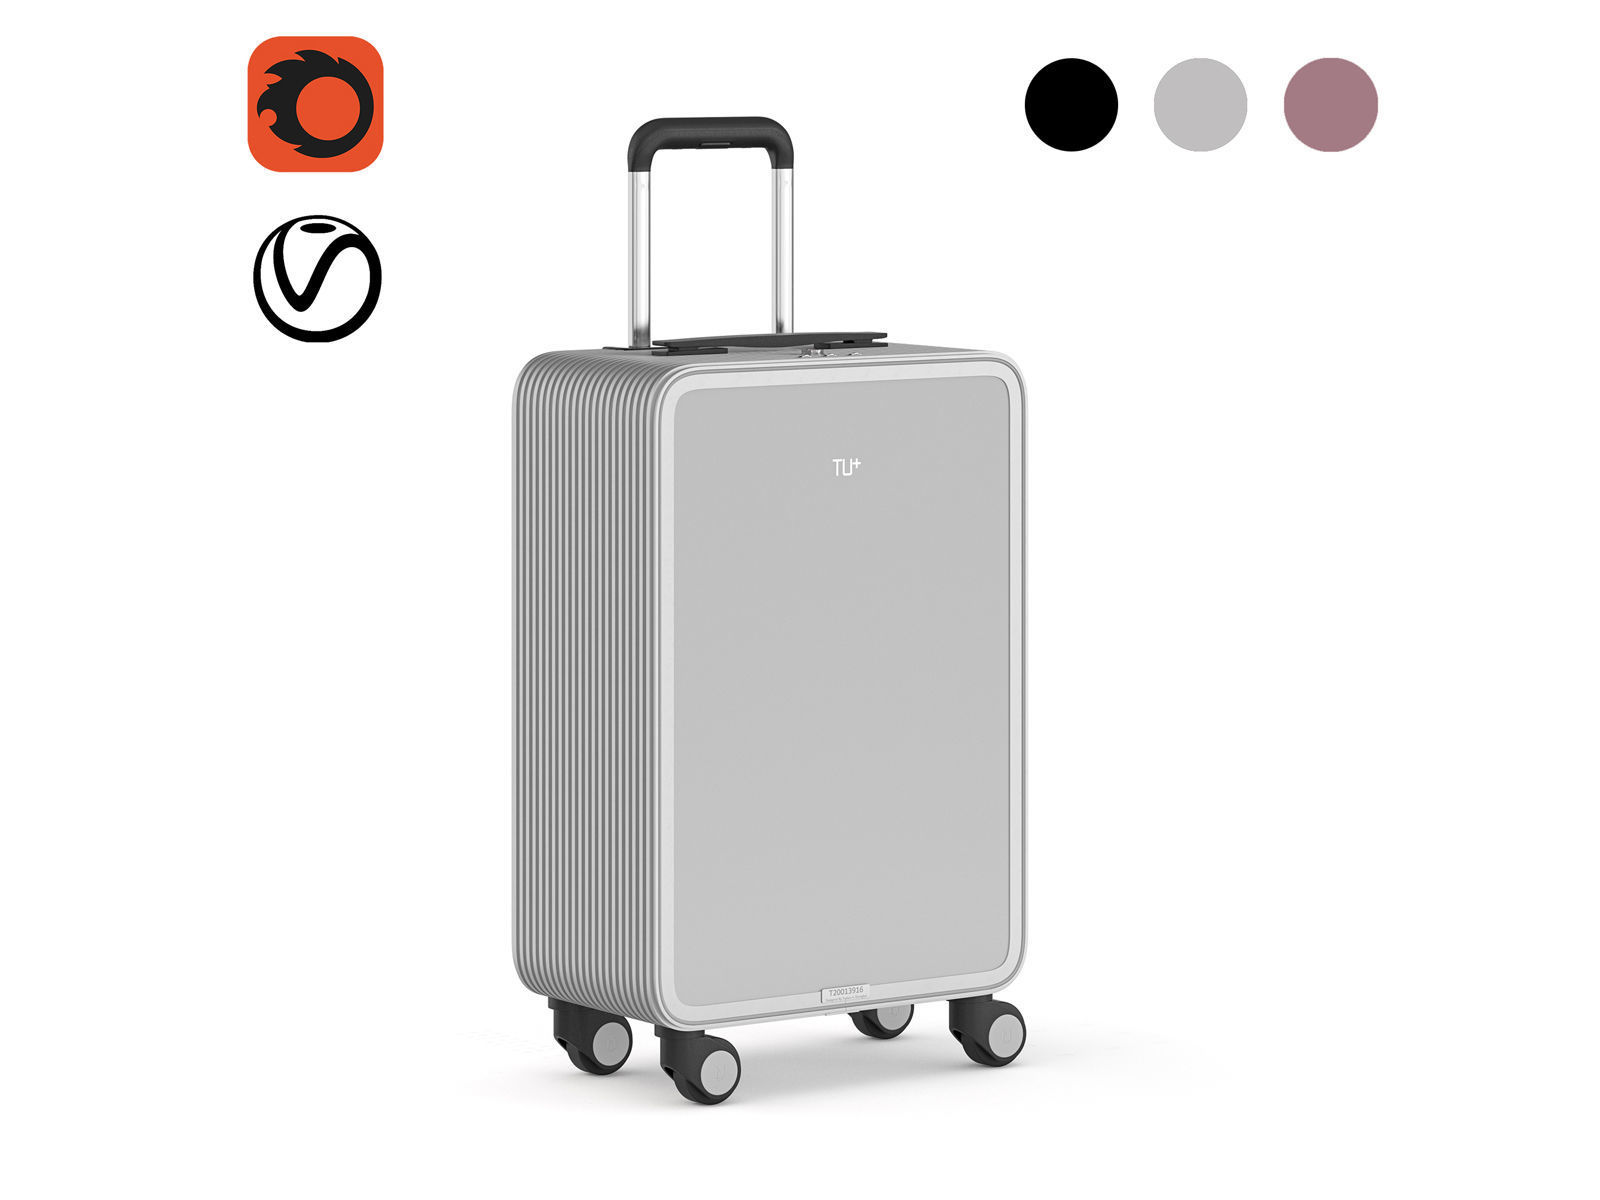 TUPLUS X2 Aluminum Hard Case Carry-On Luggage